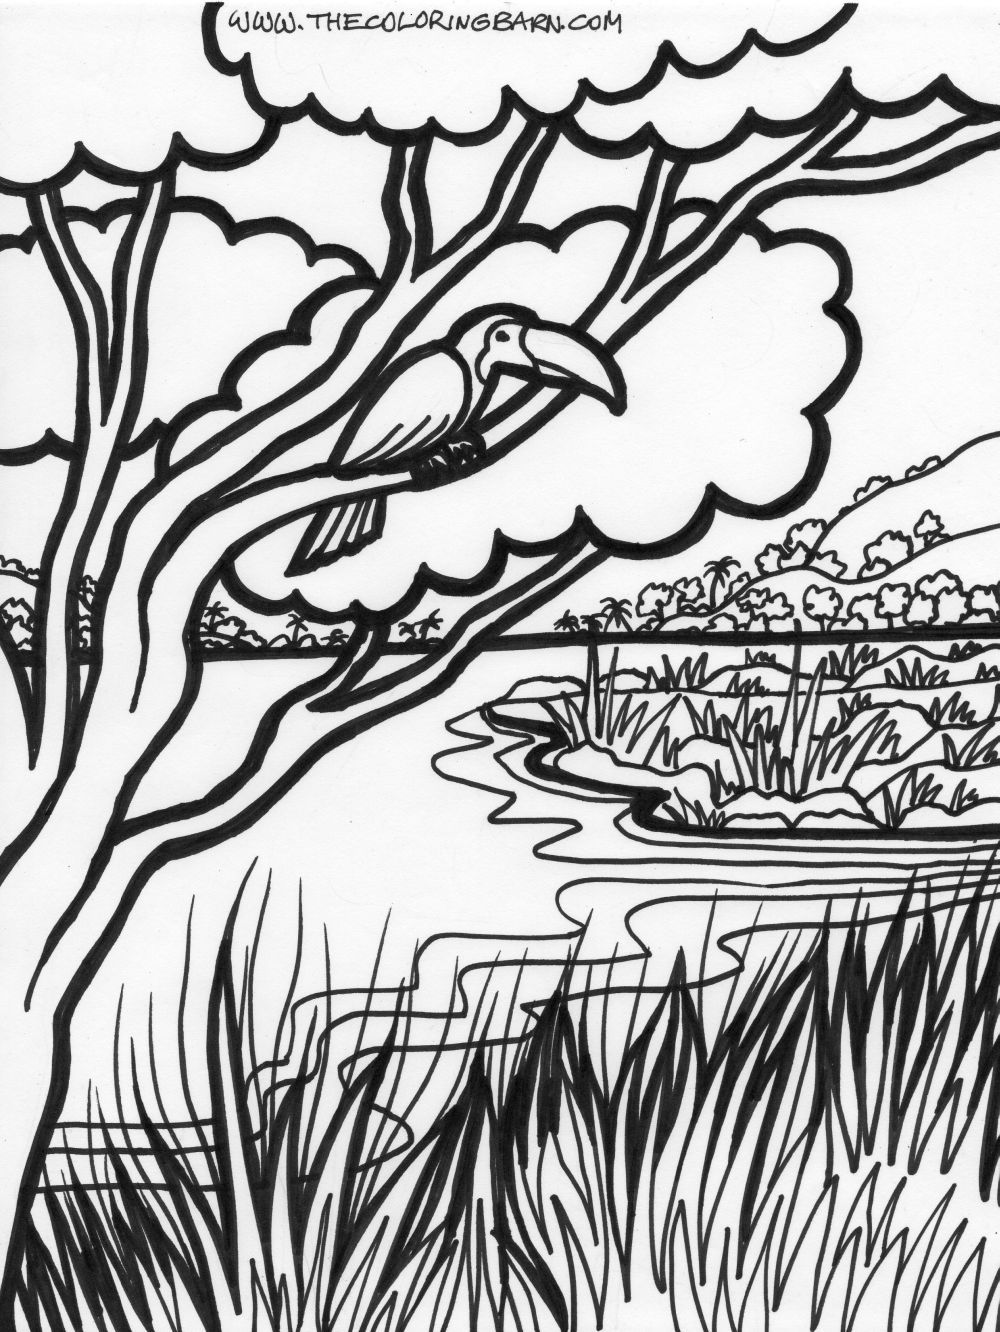 Printable coloring pages jungle - Jungle Coloring Pages Free Description Of Jungle Trees Coloring Pages 6 Background